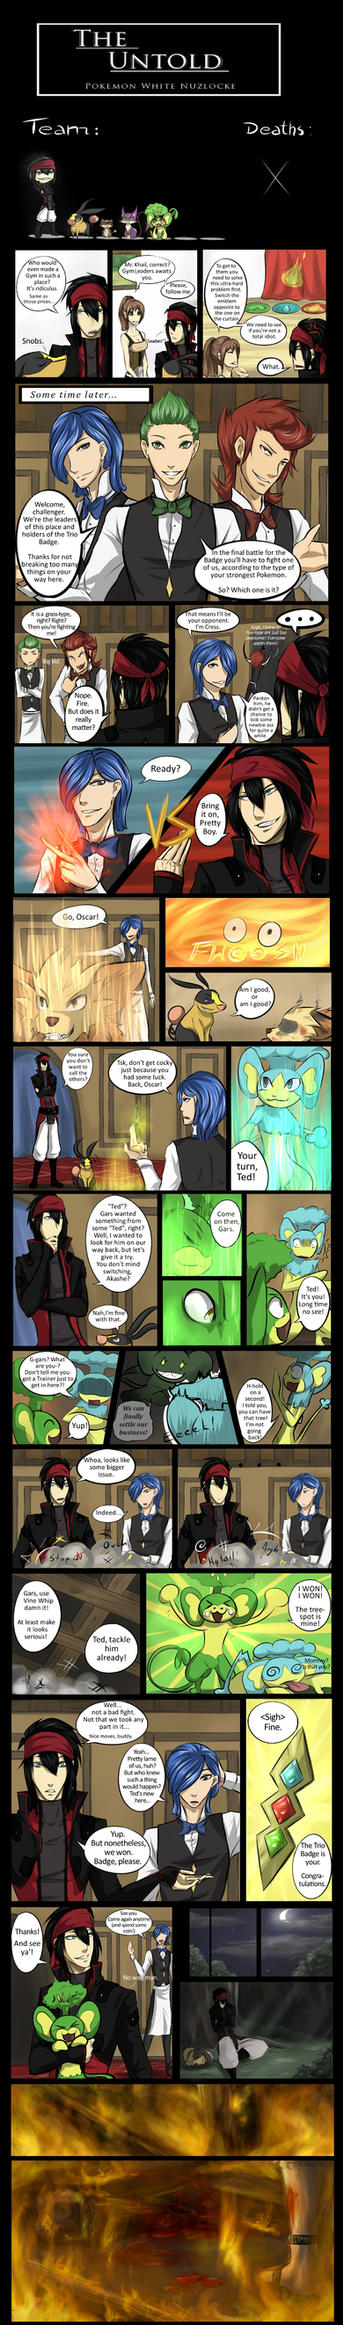 The Untold - part 7 by Antarija